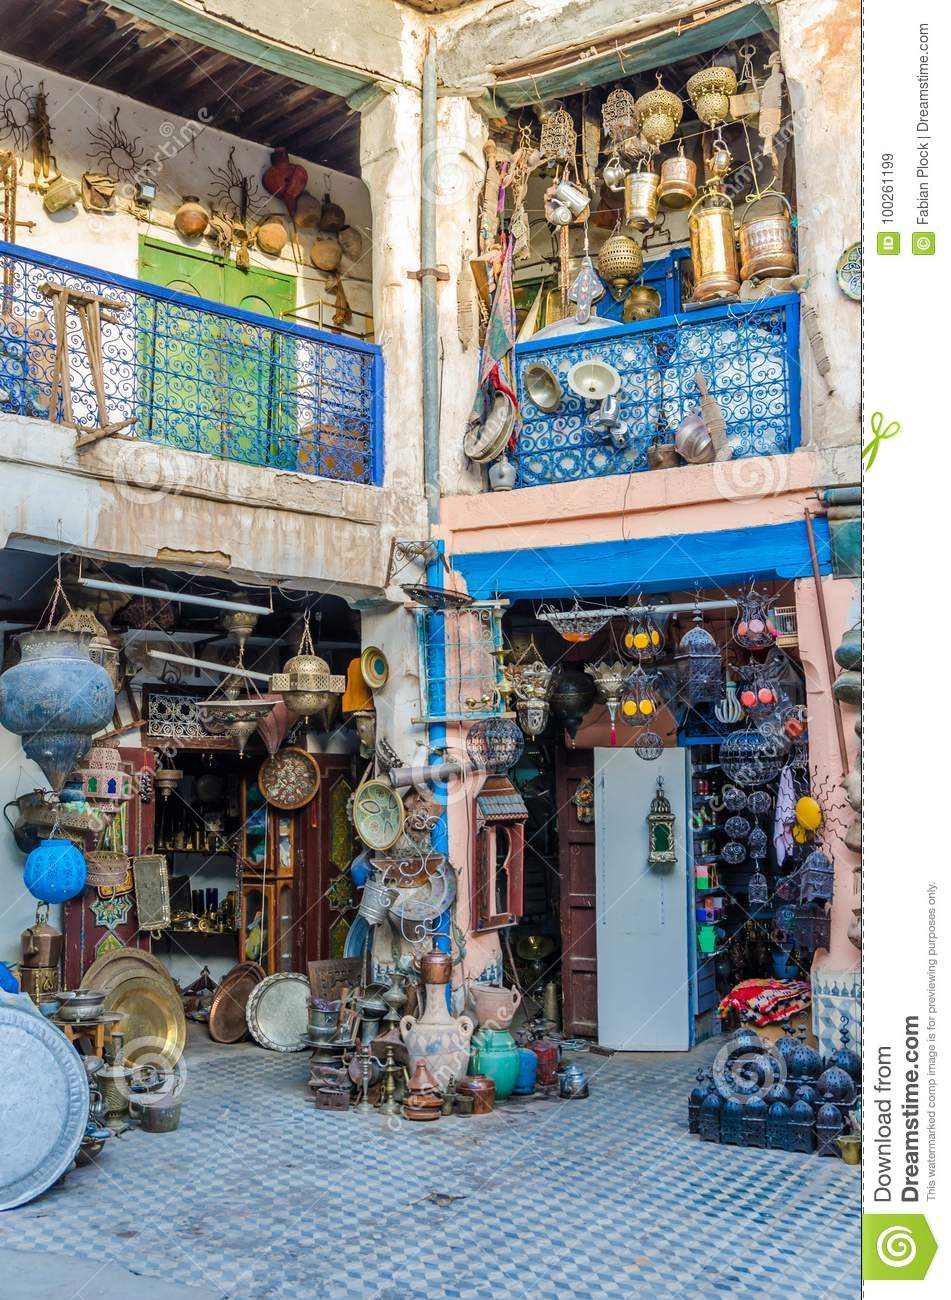 Huge selection of pots, lamps, lantern and other metal works in shop of souk in medina of Fez, Morocco, North Africa